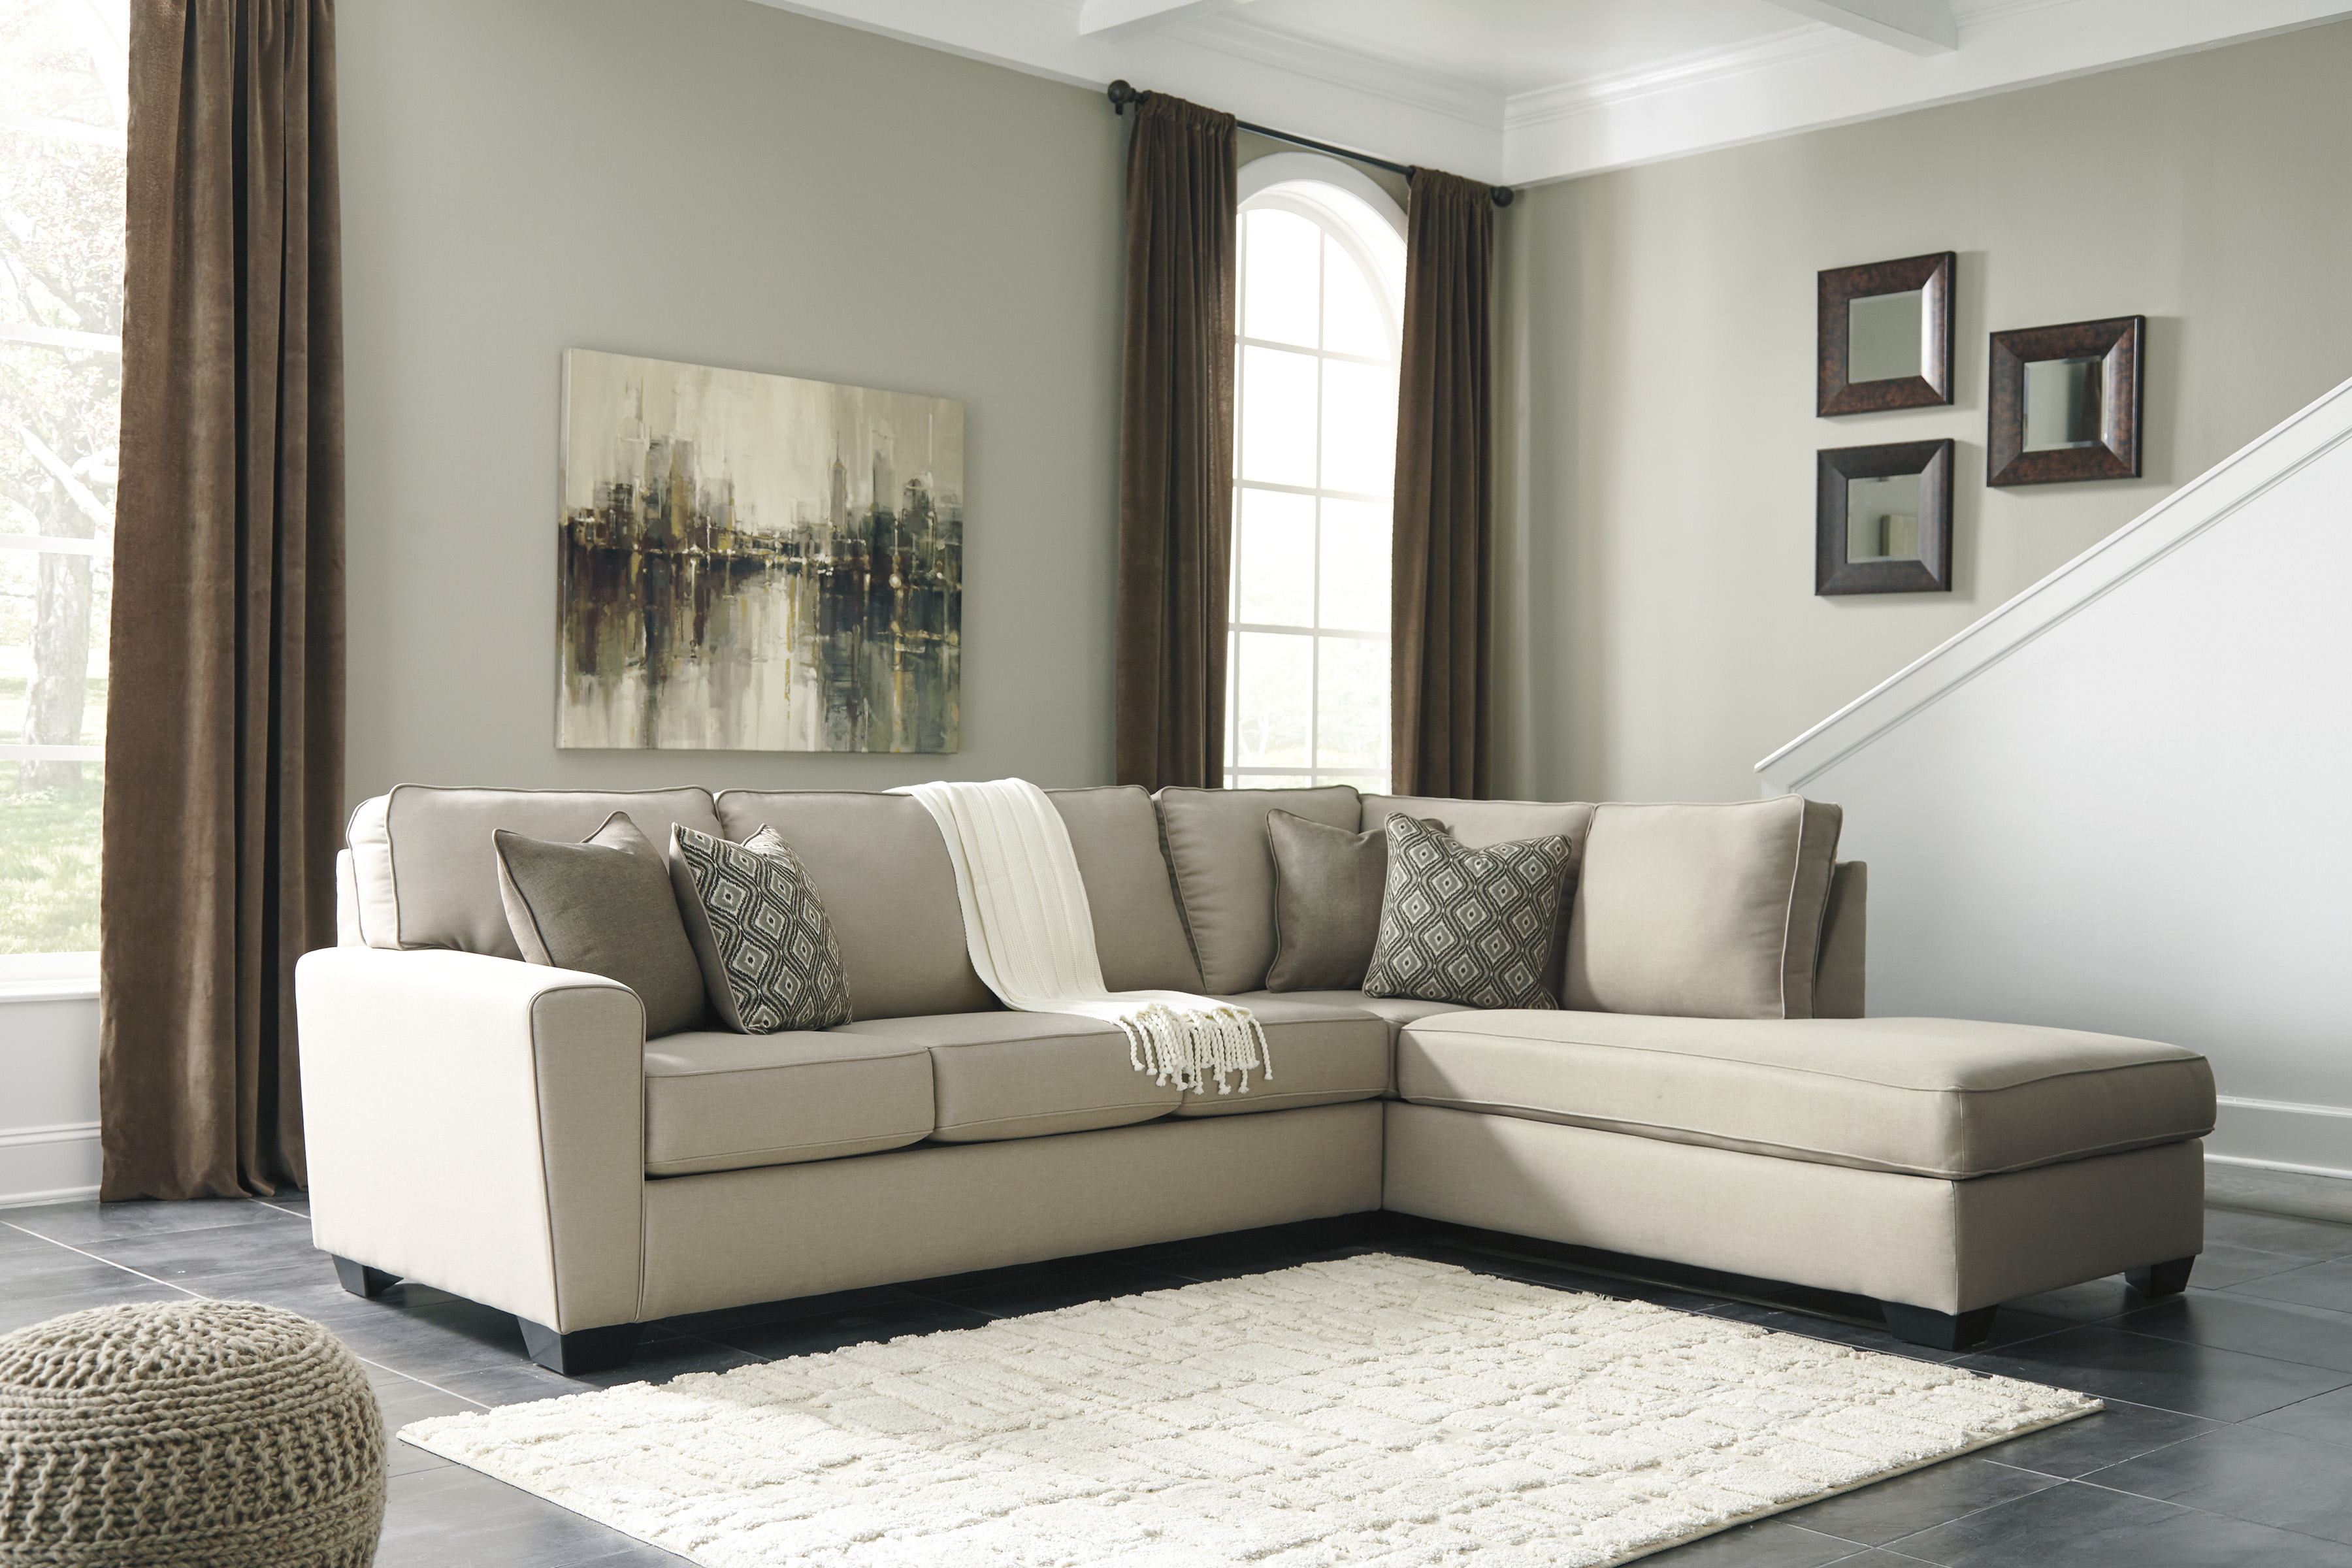 calicho charcoal sectional by ashley 91202 17 wide tapered arms gray fabric contemporary style